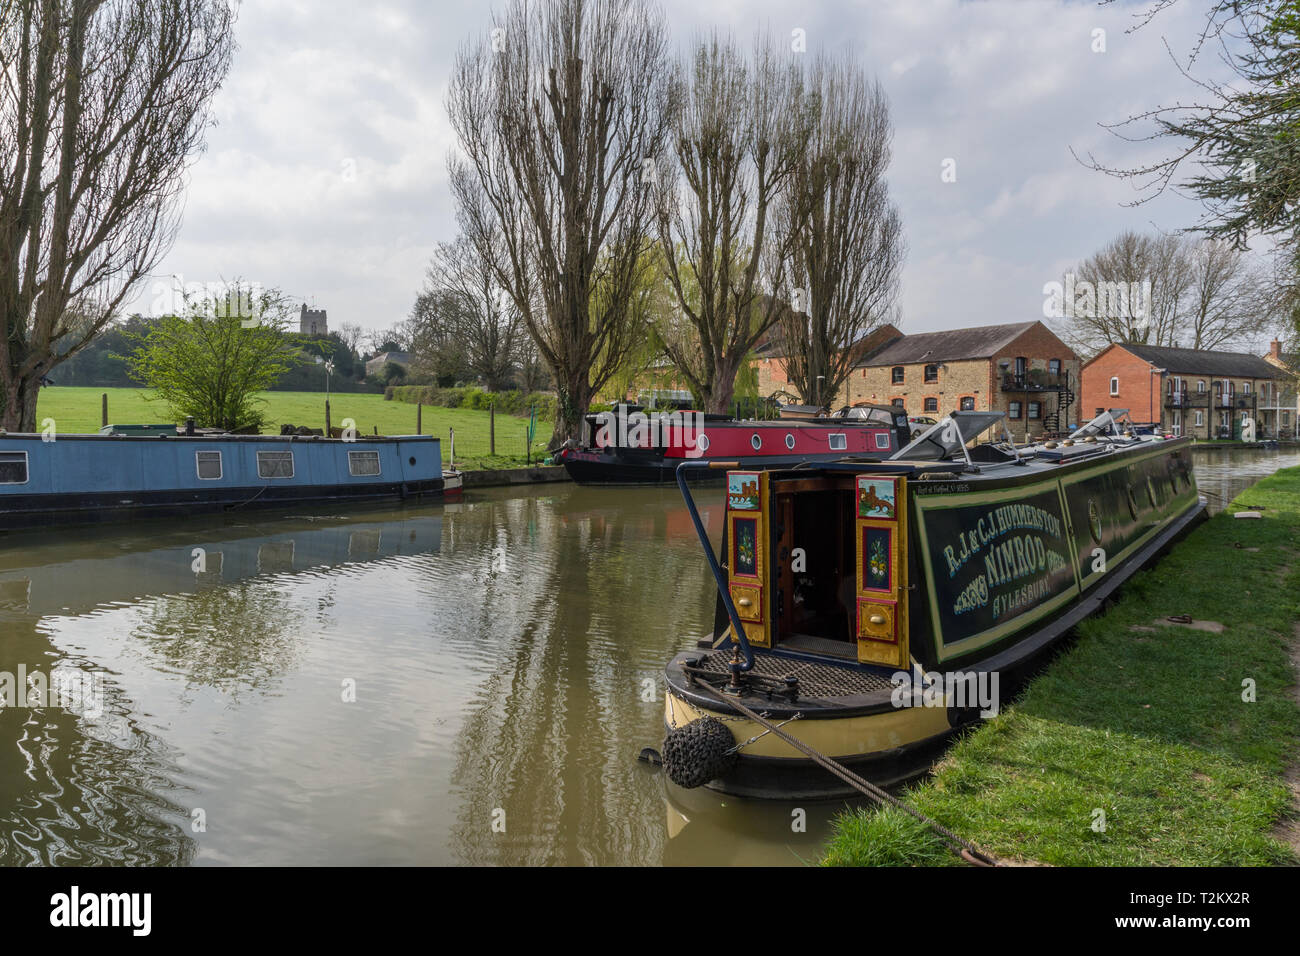 Narrowboats on the Grand Union canal in Spring, Cosgrove, Northamptonshire, UK - Stock Image